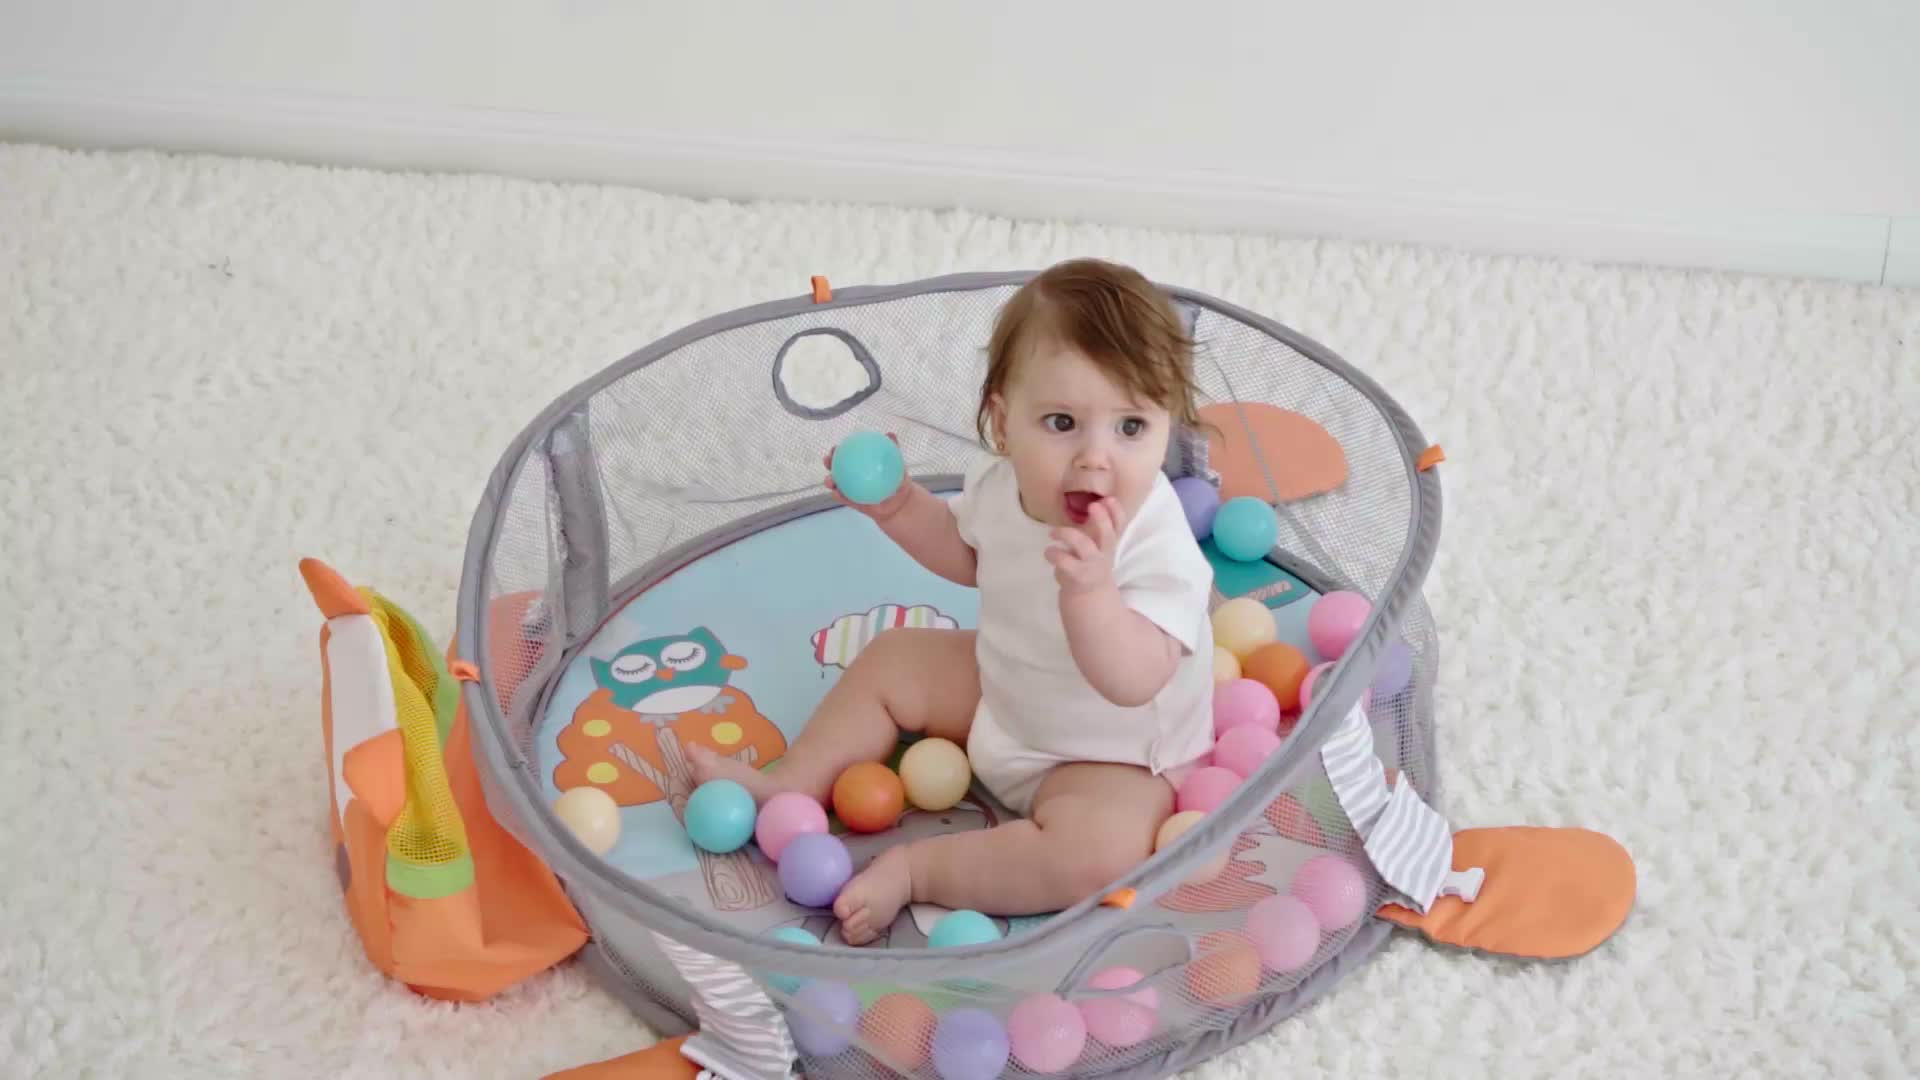 Educational Indoor Soft Play Gym 5in1Your Way Ball Play Activity Gym Musical Baby Activity Gym